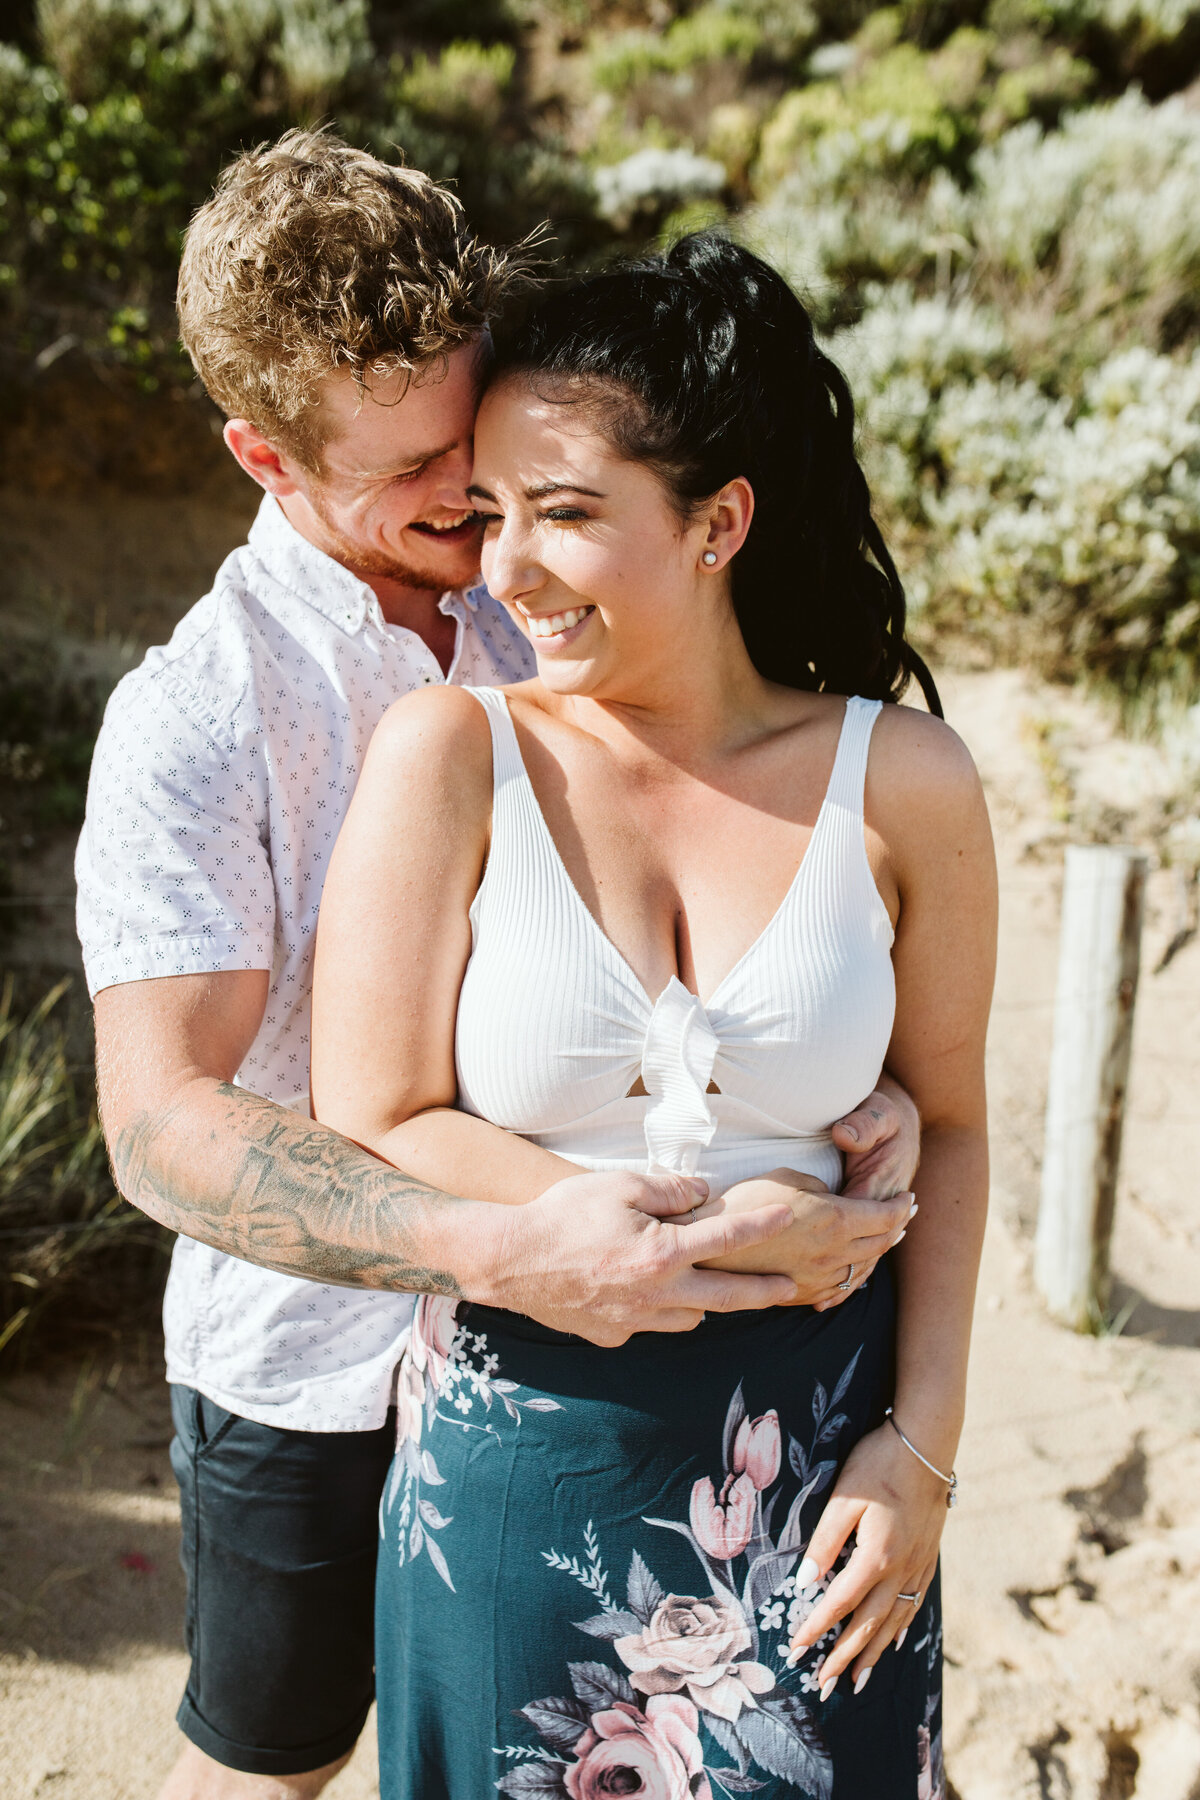 Belle_Martin_Photography_Sorrento_Beach_Engagement-2